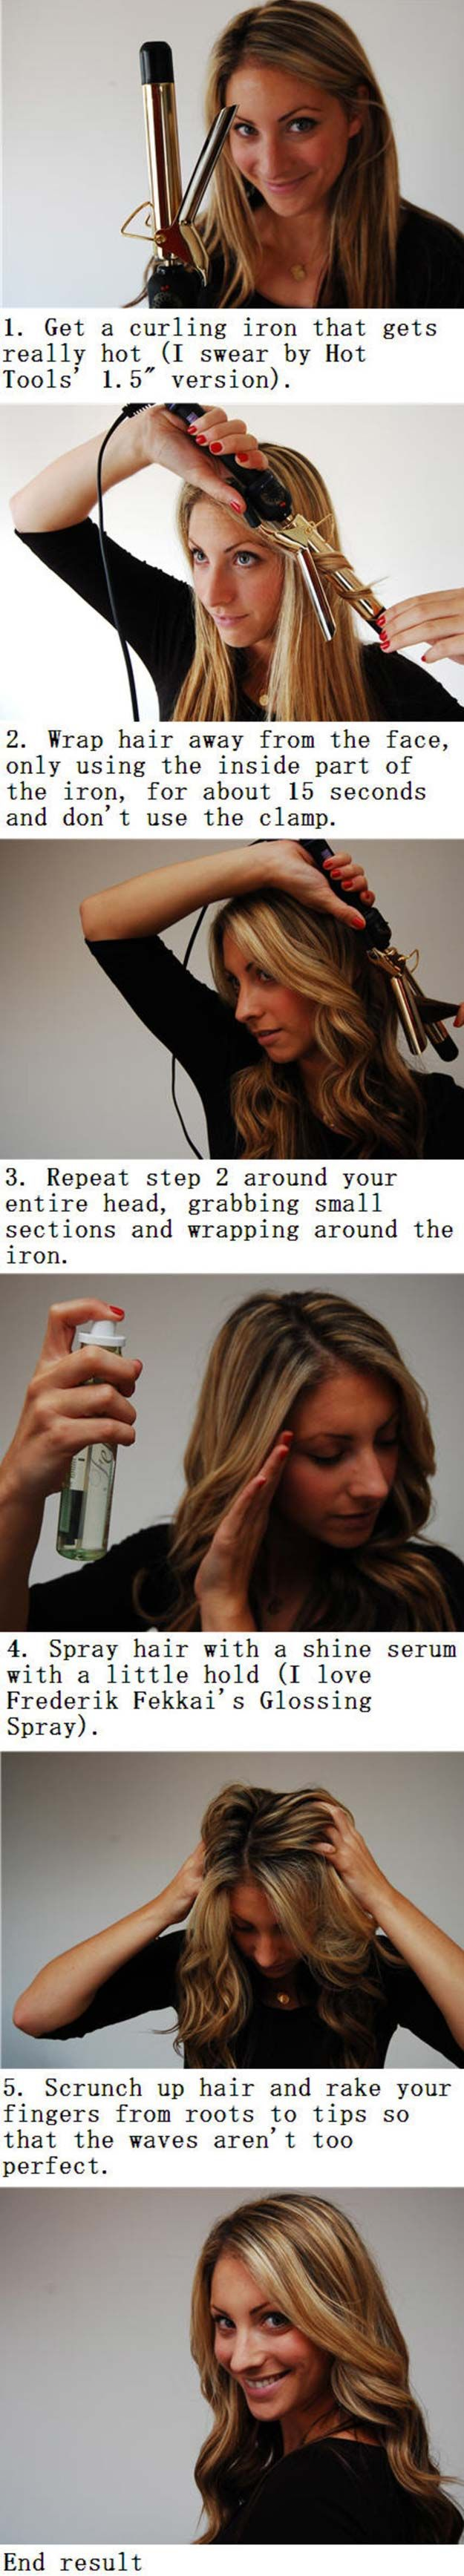 Easy Beachy Waves Tutorials for Hair - How To: Beachy Waves - DIY And Easy Step ...